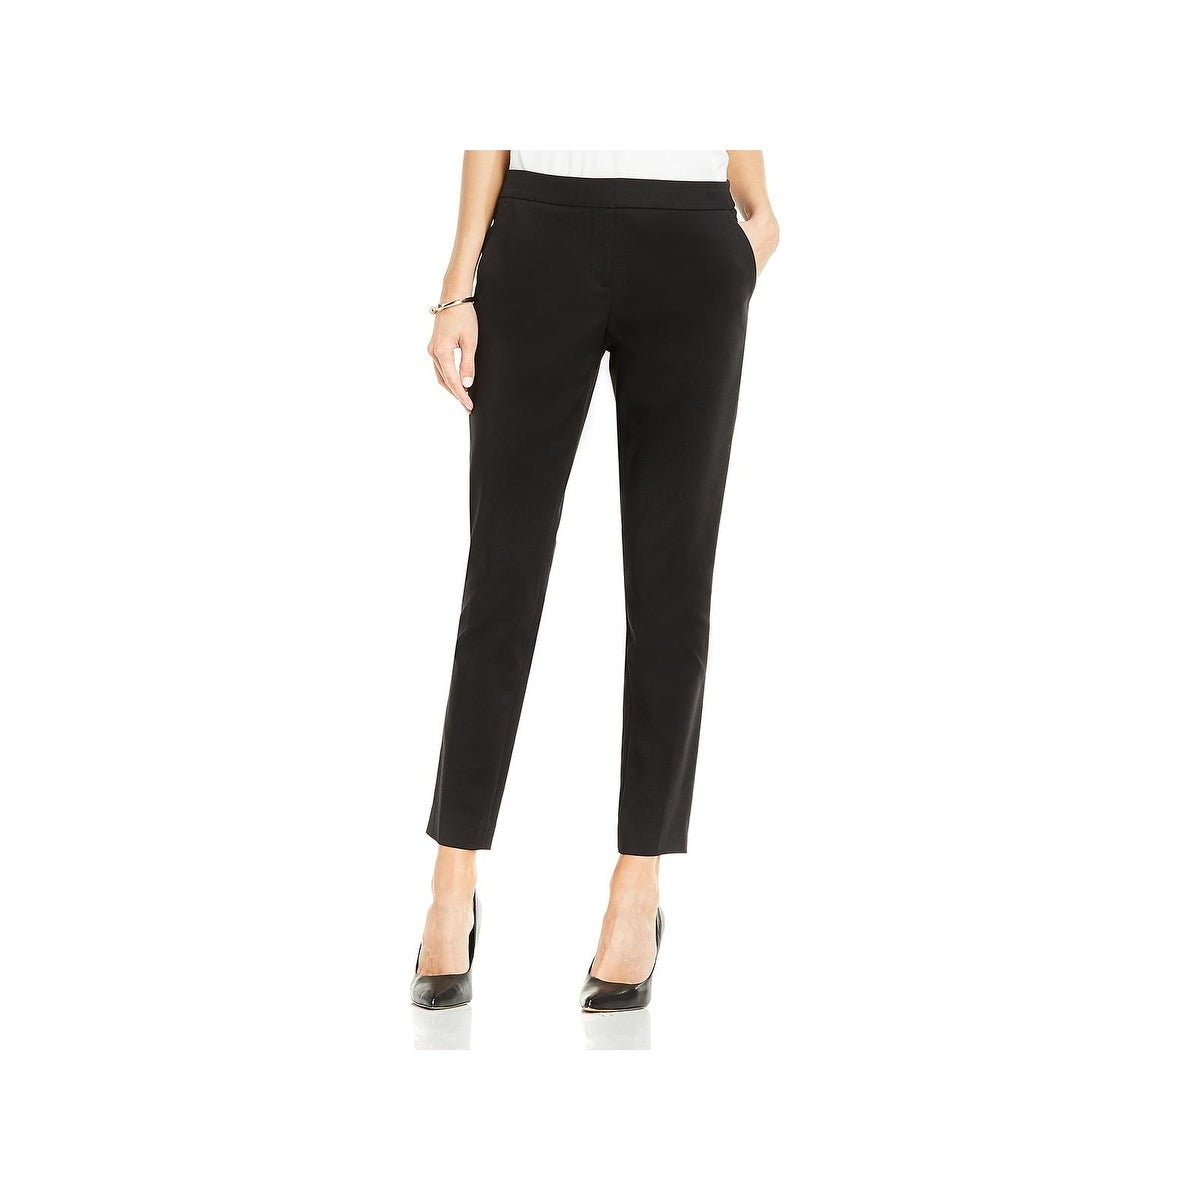 dcfff99df4636 Vince Camuto Pants | Find Great Women's Clothing Deals Shopping at Overstock